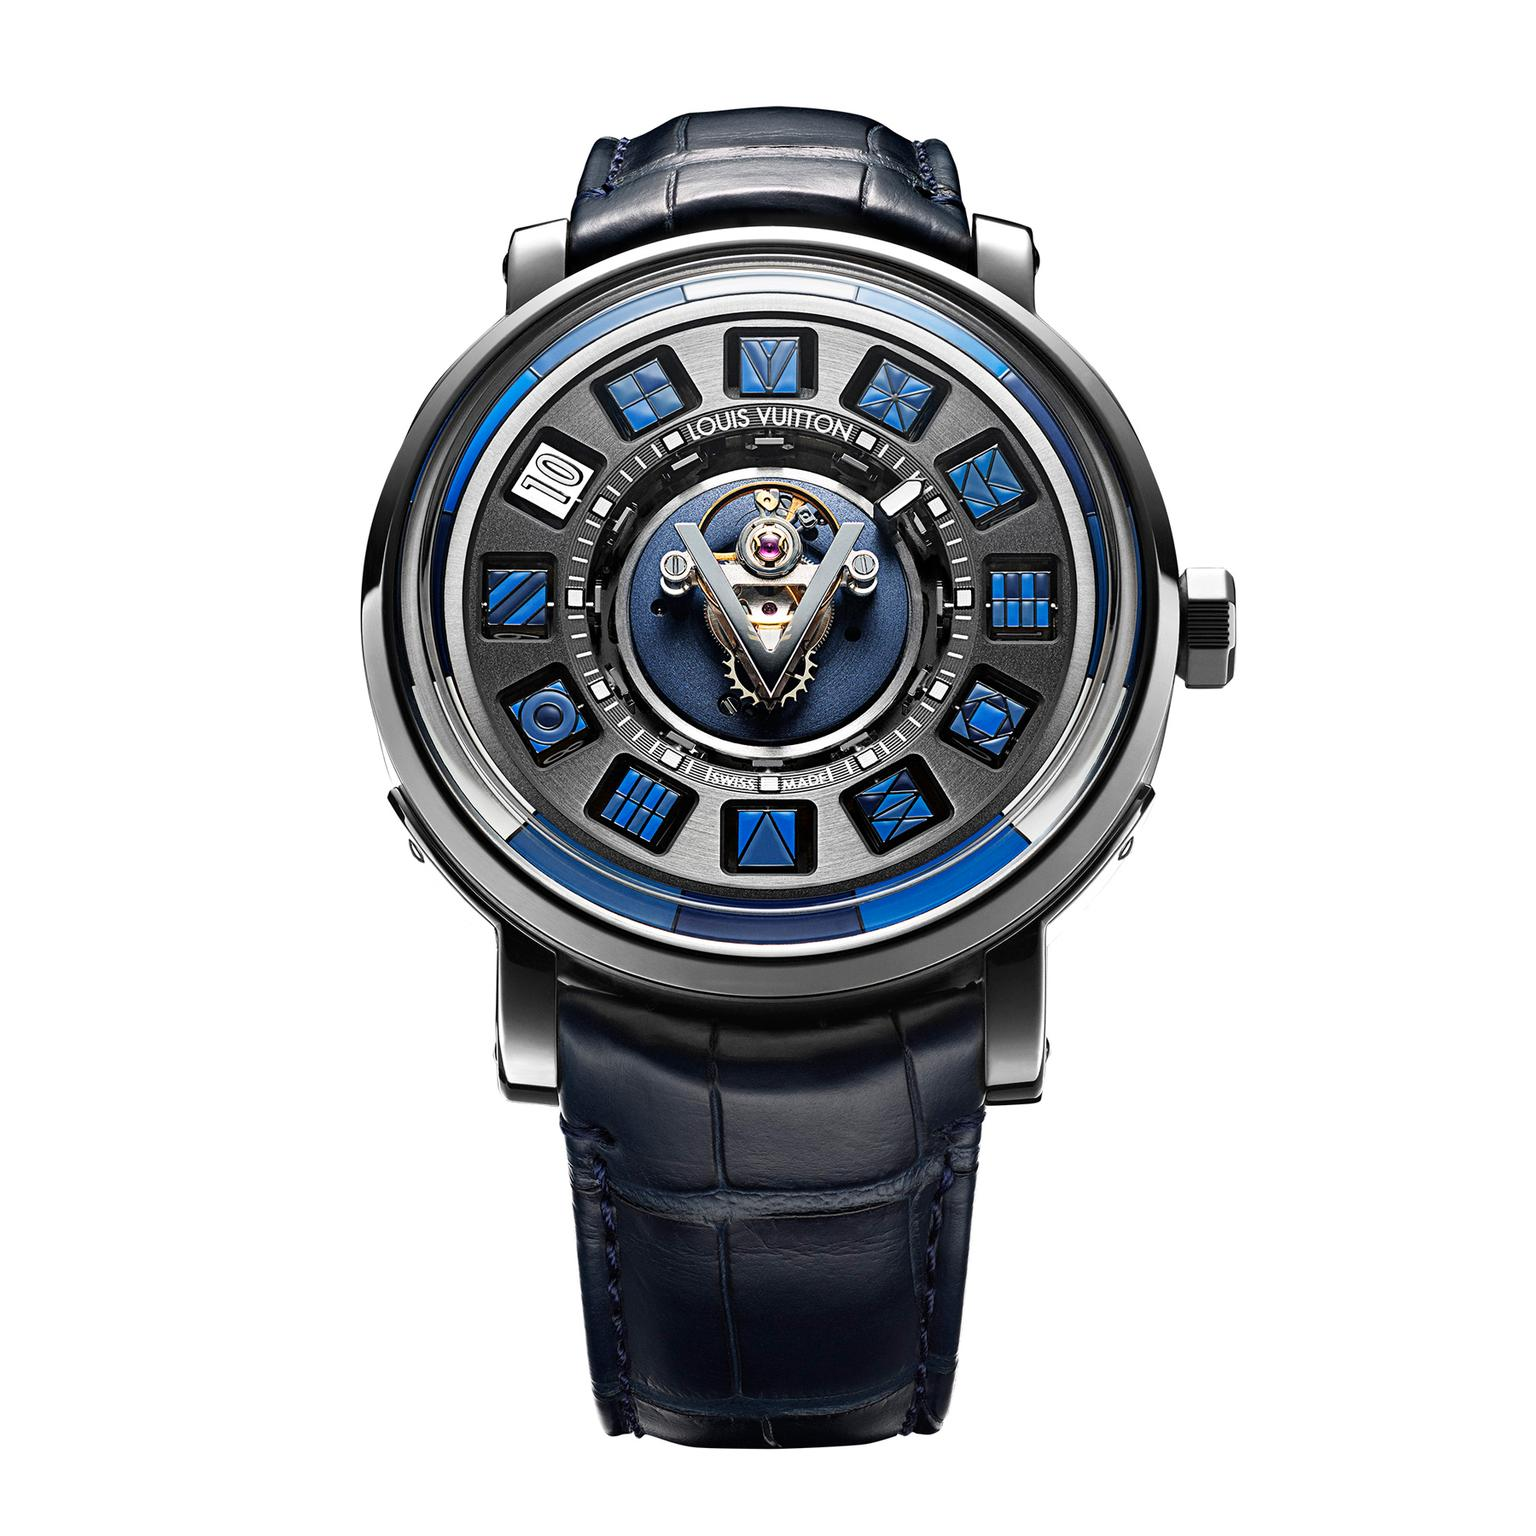 4)-Louis-Vuitton-Escale-Spin-Time-Tourbillon-Central-Blue-RegisGolay